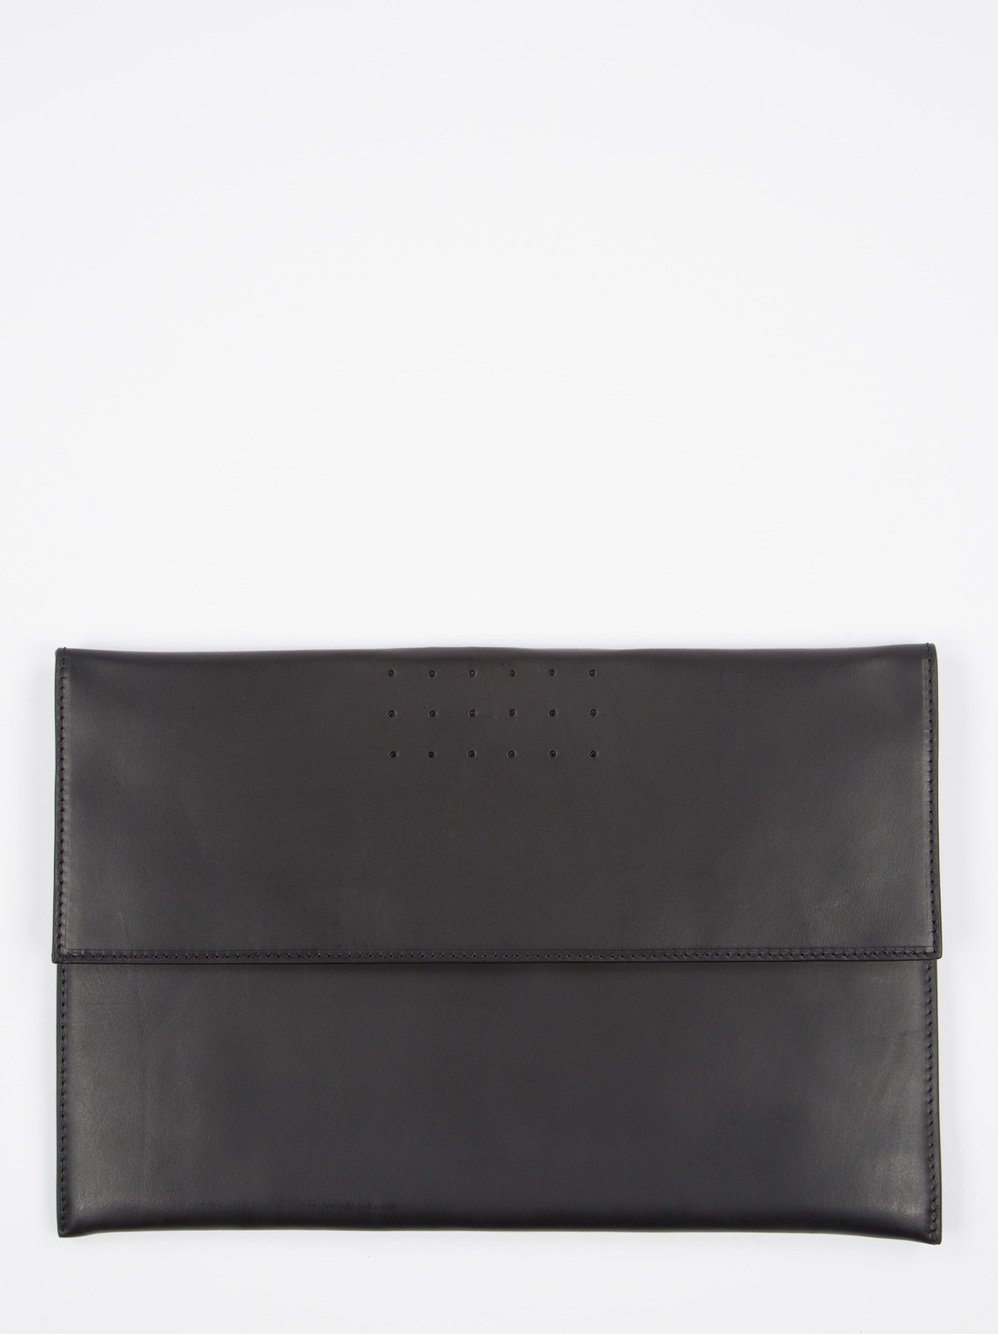 RICK OWENS - LAPTOP CASE